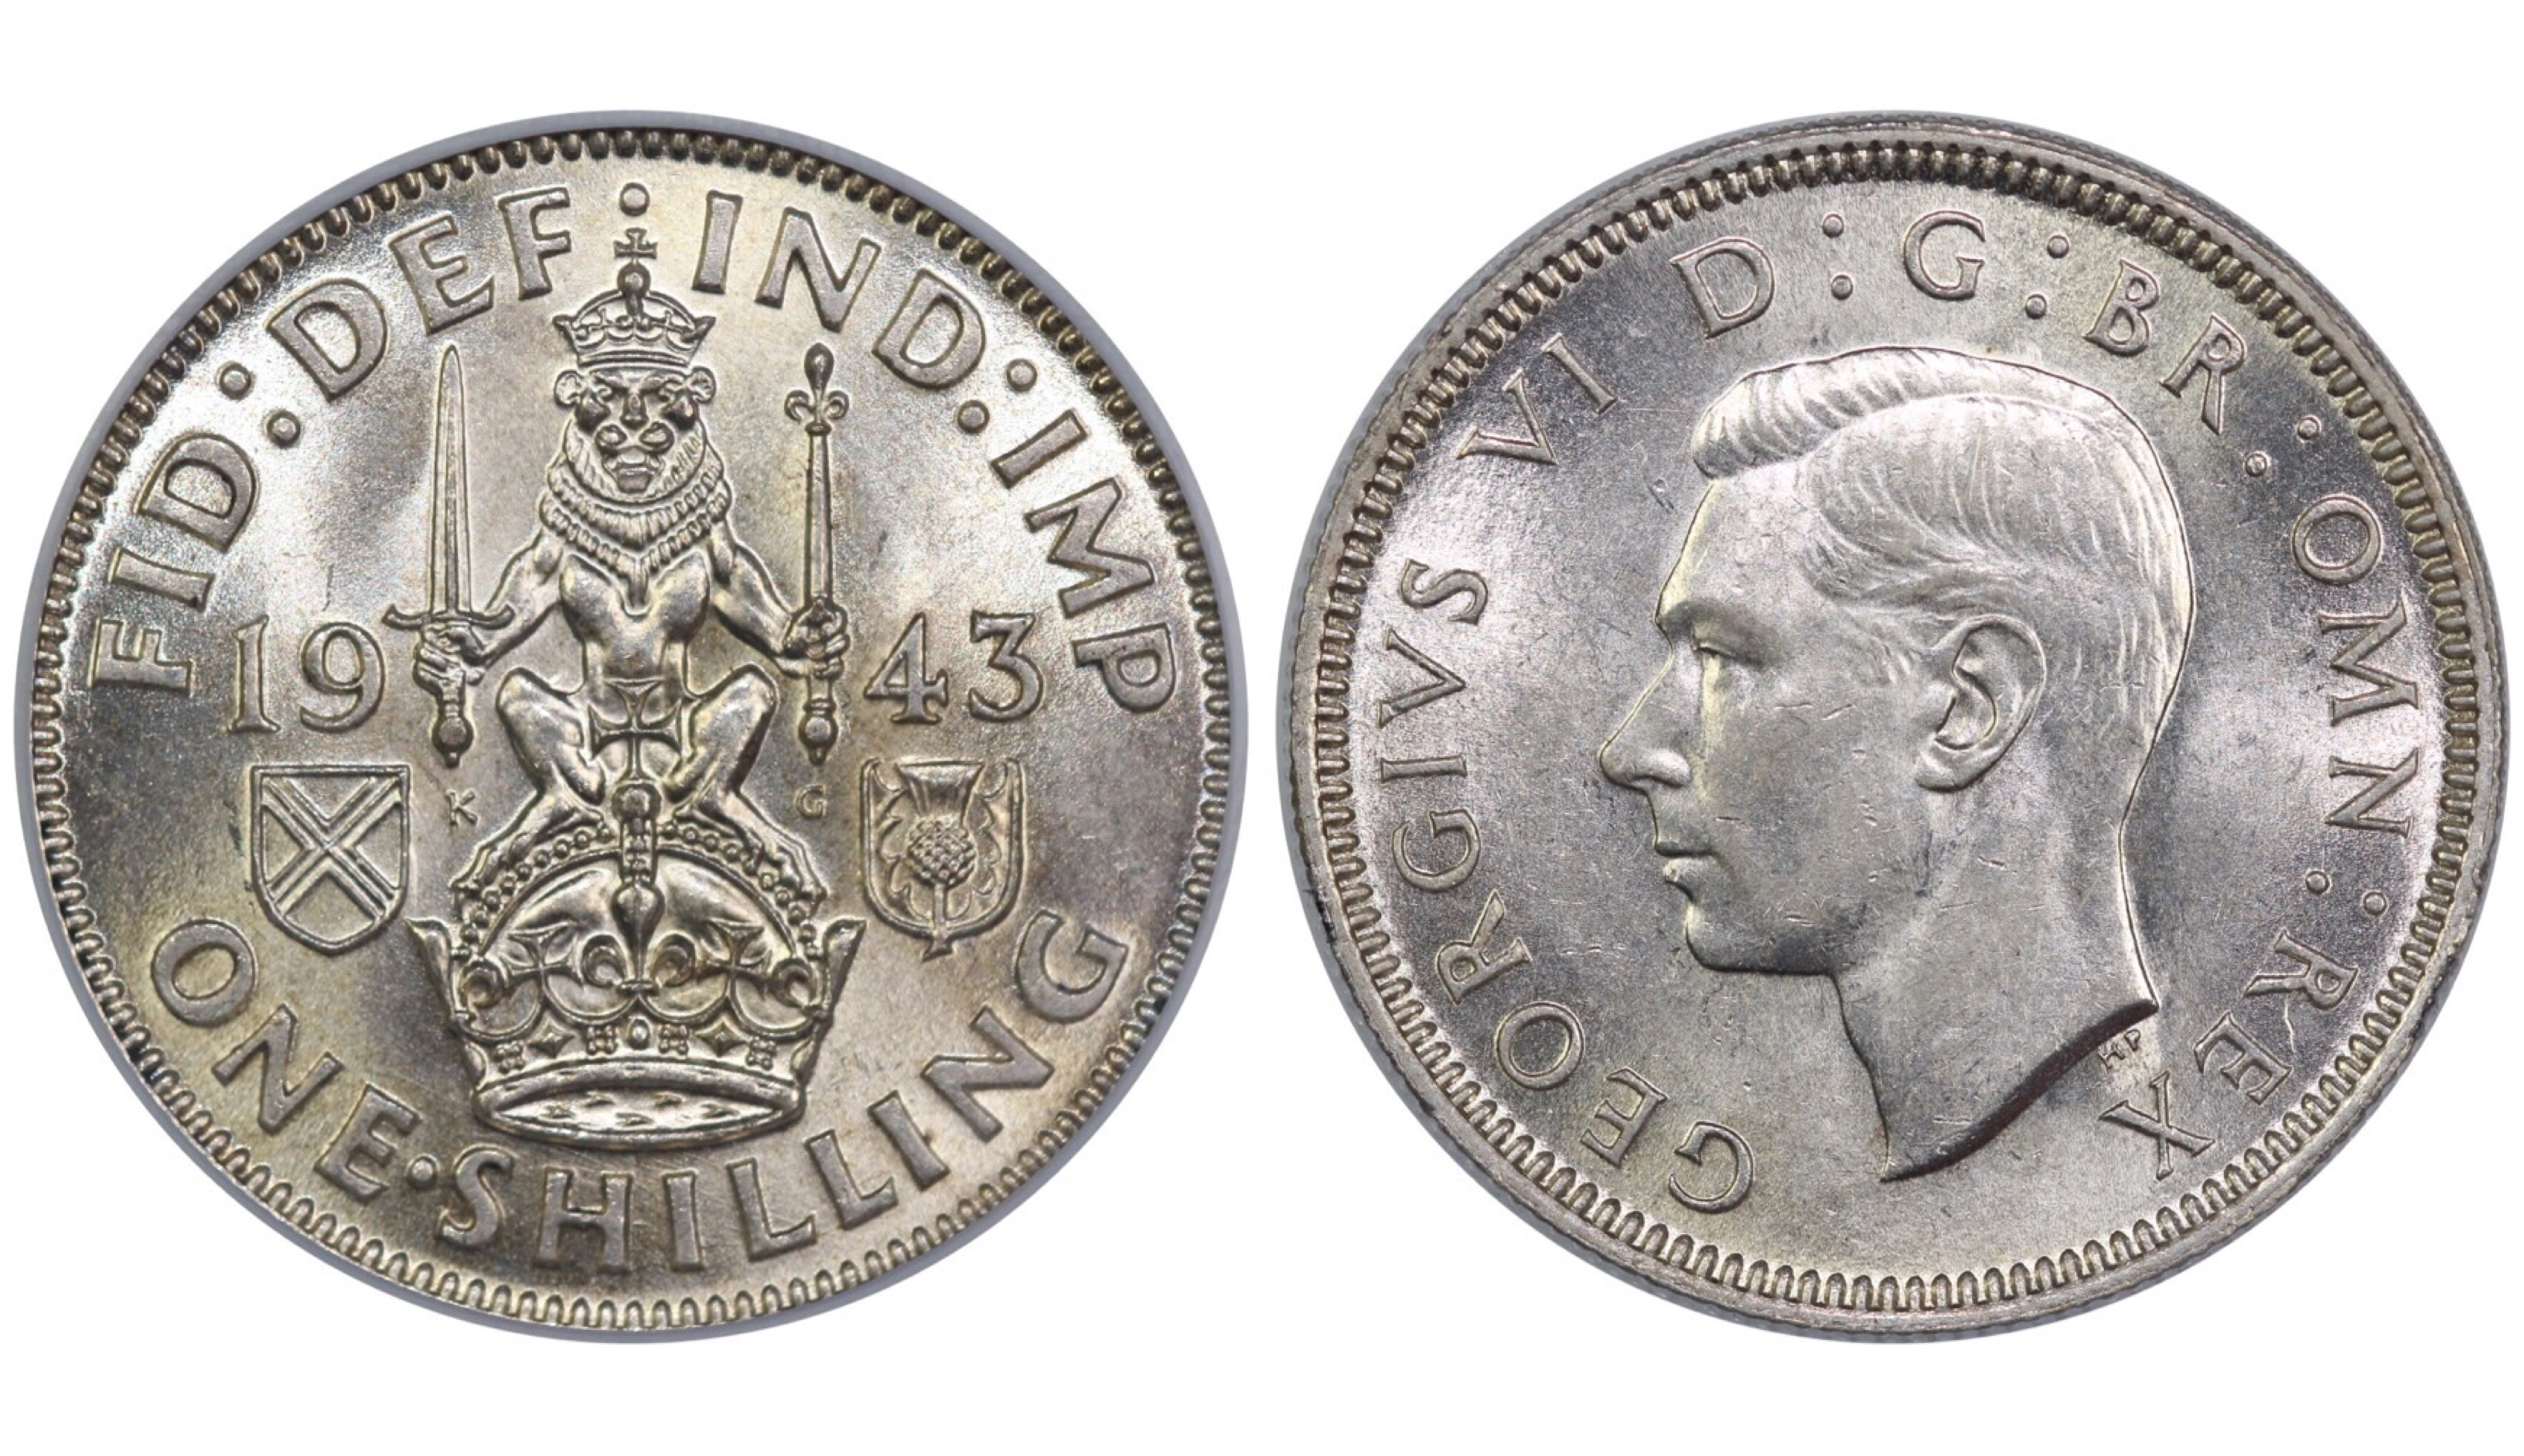 1943 'Scottish' Shilling, CGS 75, ESC 1465, UIN 25671